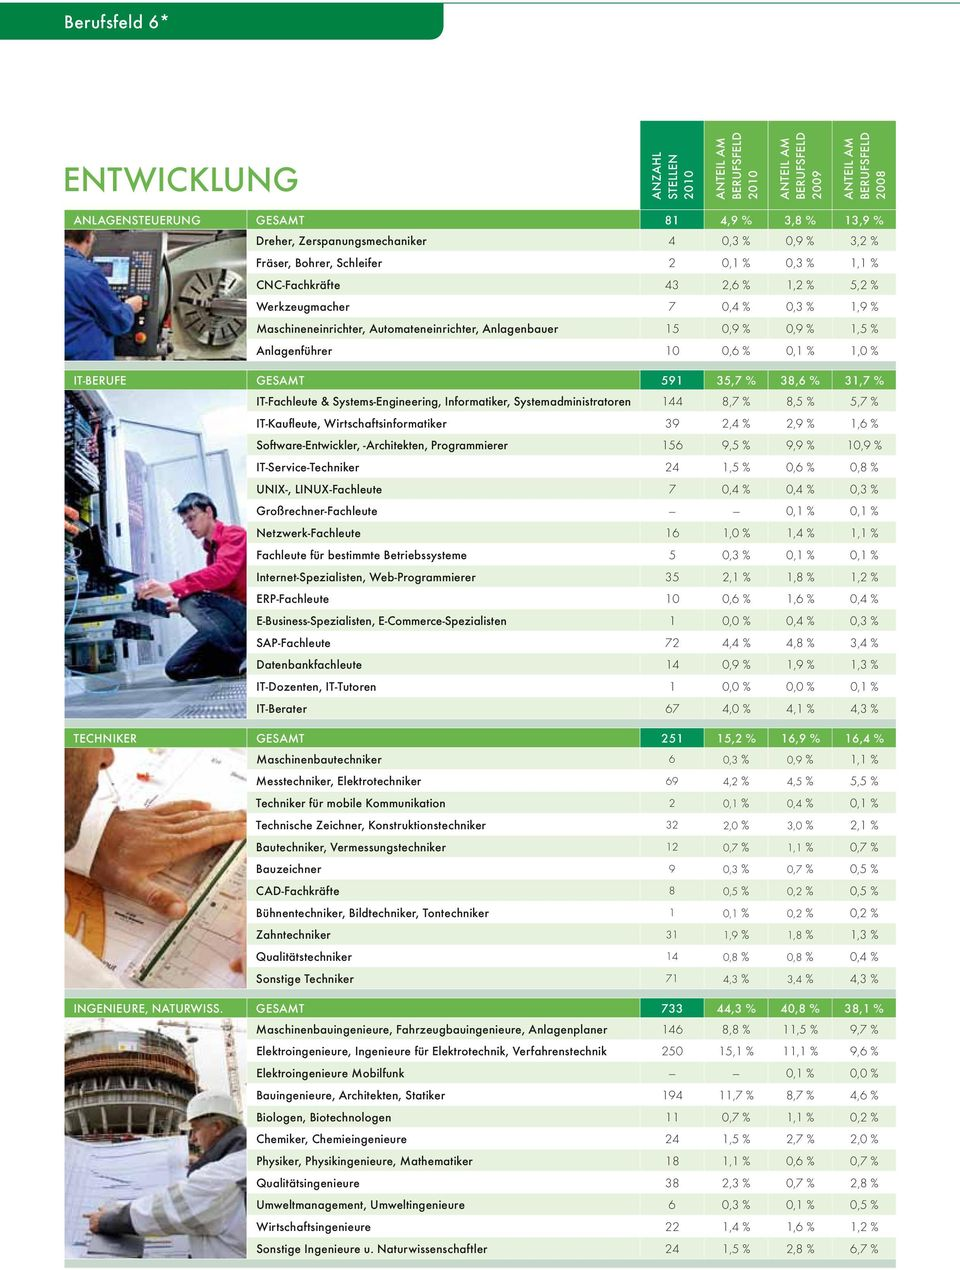 591 35,7 % 38,6 % 31,7 % IT-Fachleute & Systems-Engineering, Informatiker, Systemadministratoren 144 8,7 % 8,5 % 5,7 % IT-Kaufleute, Wirtschaftsinformatiker 39 2,4 % 2,9 % 1,6 % Software-Entwickler,